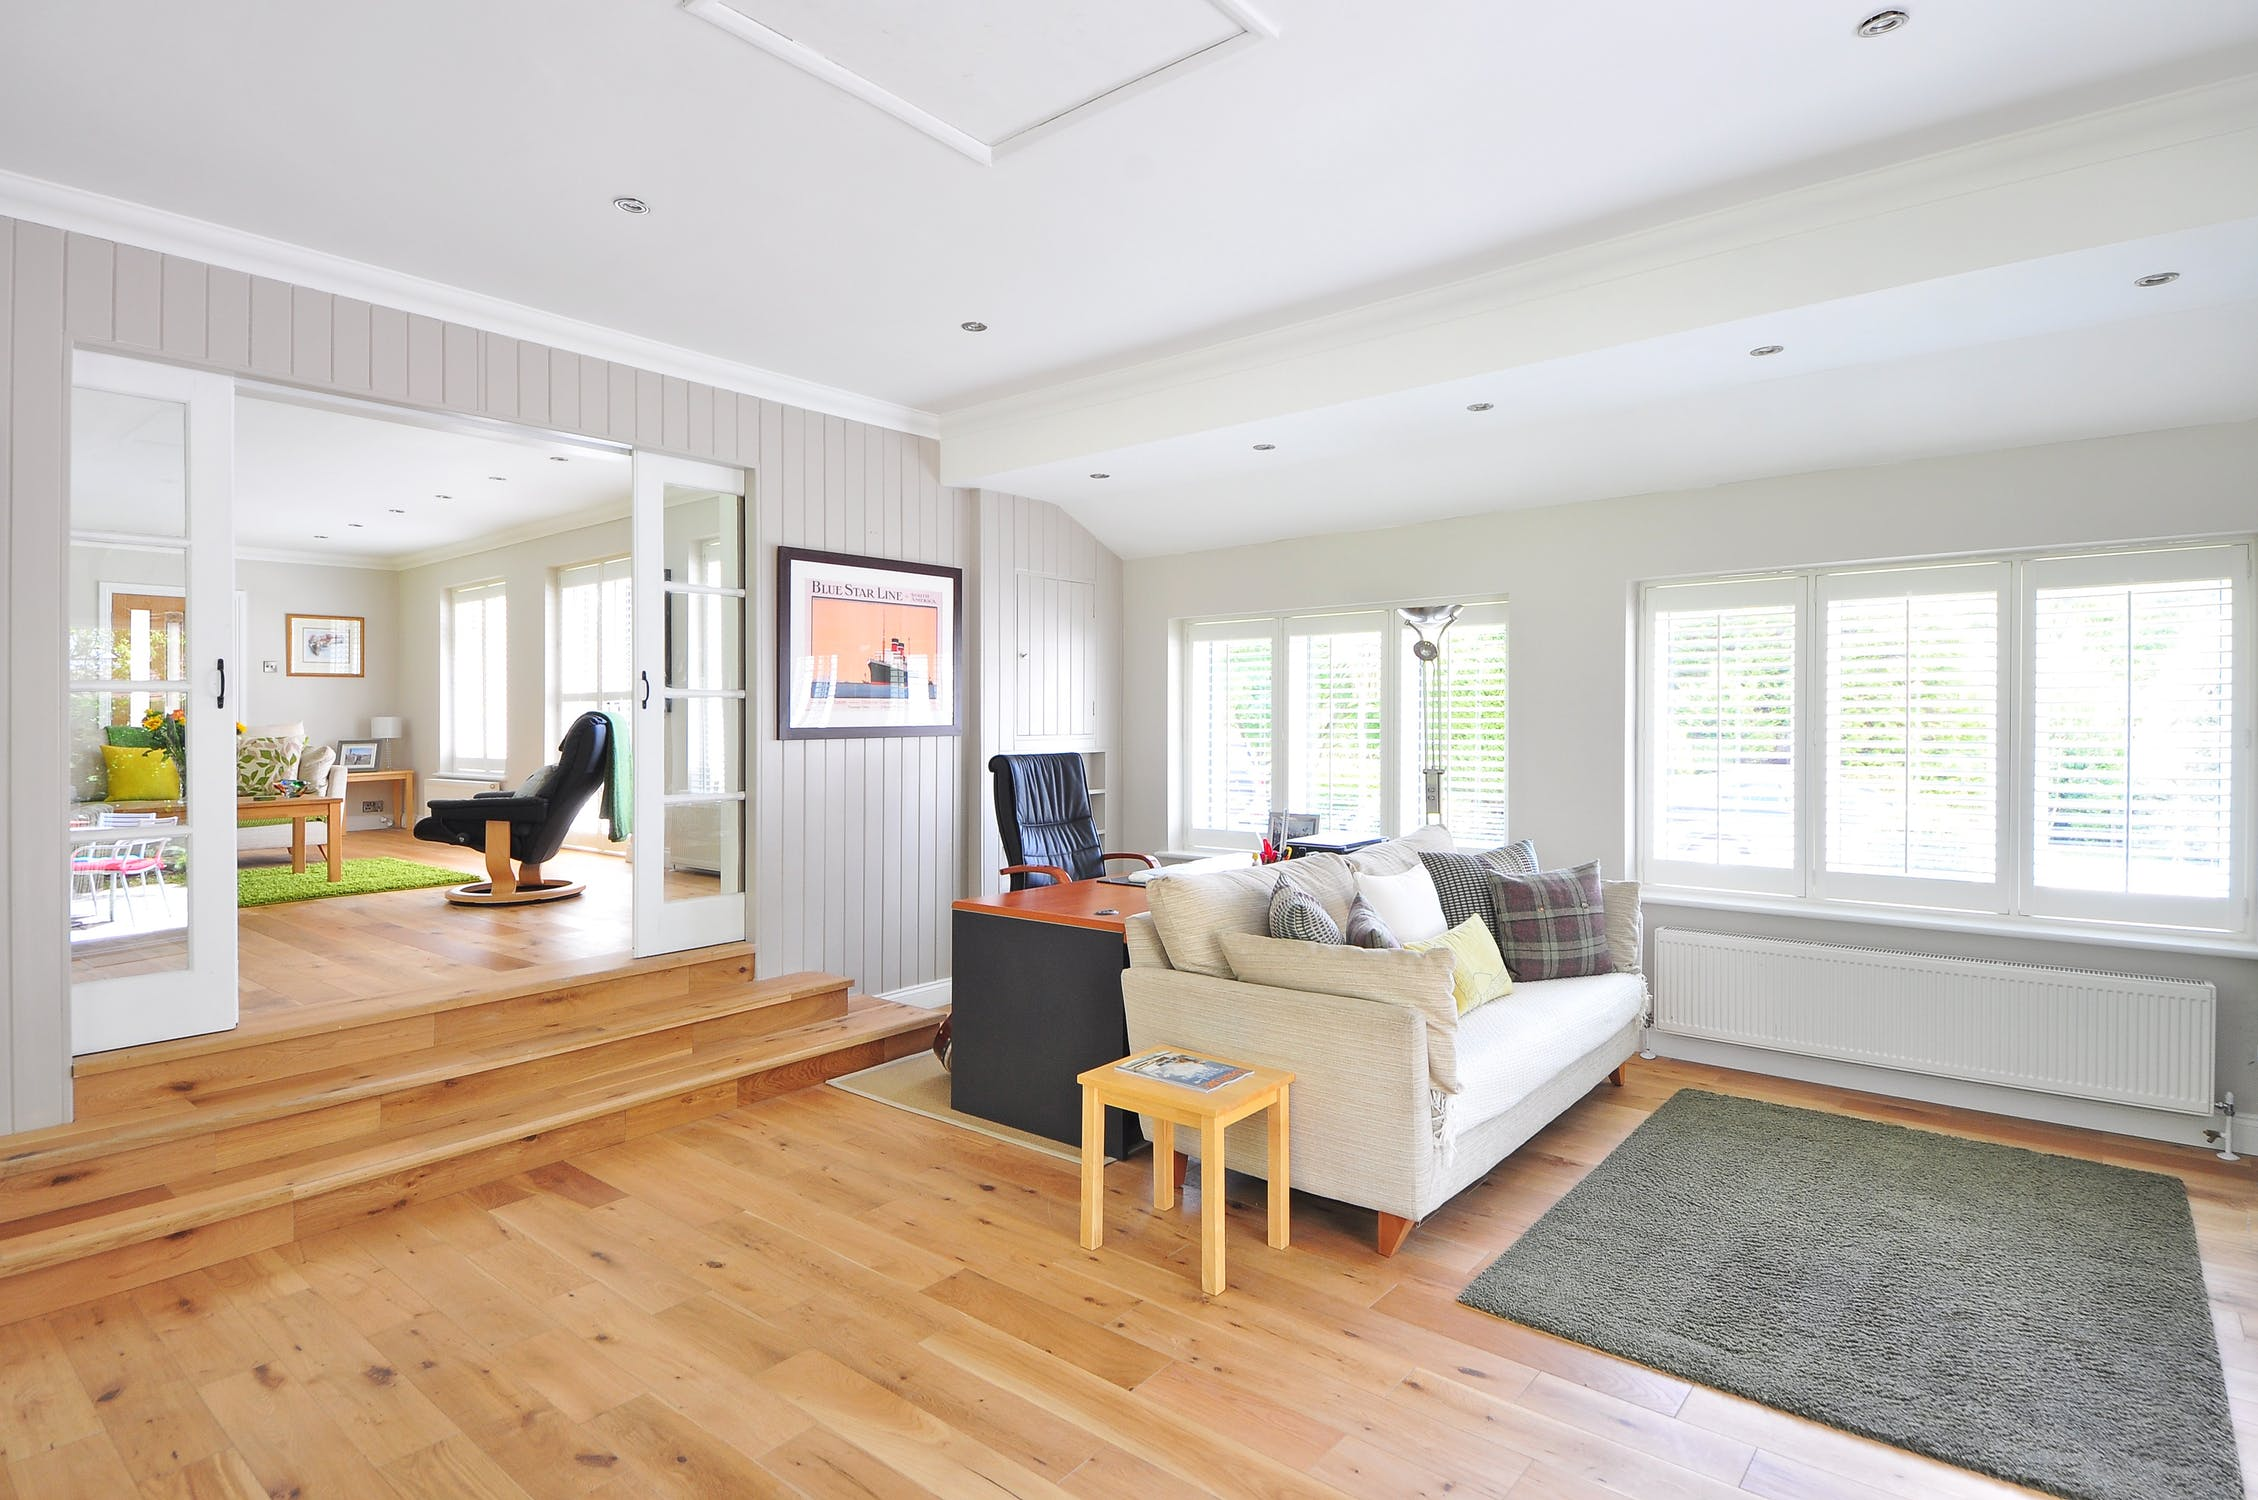 5 Reasons Why You Should Choose Luxury Vinyl Planks